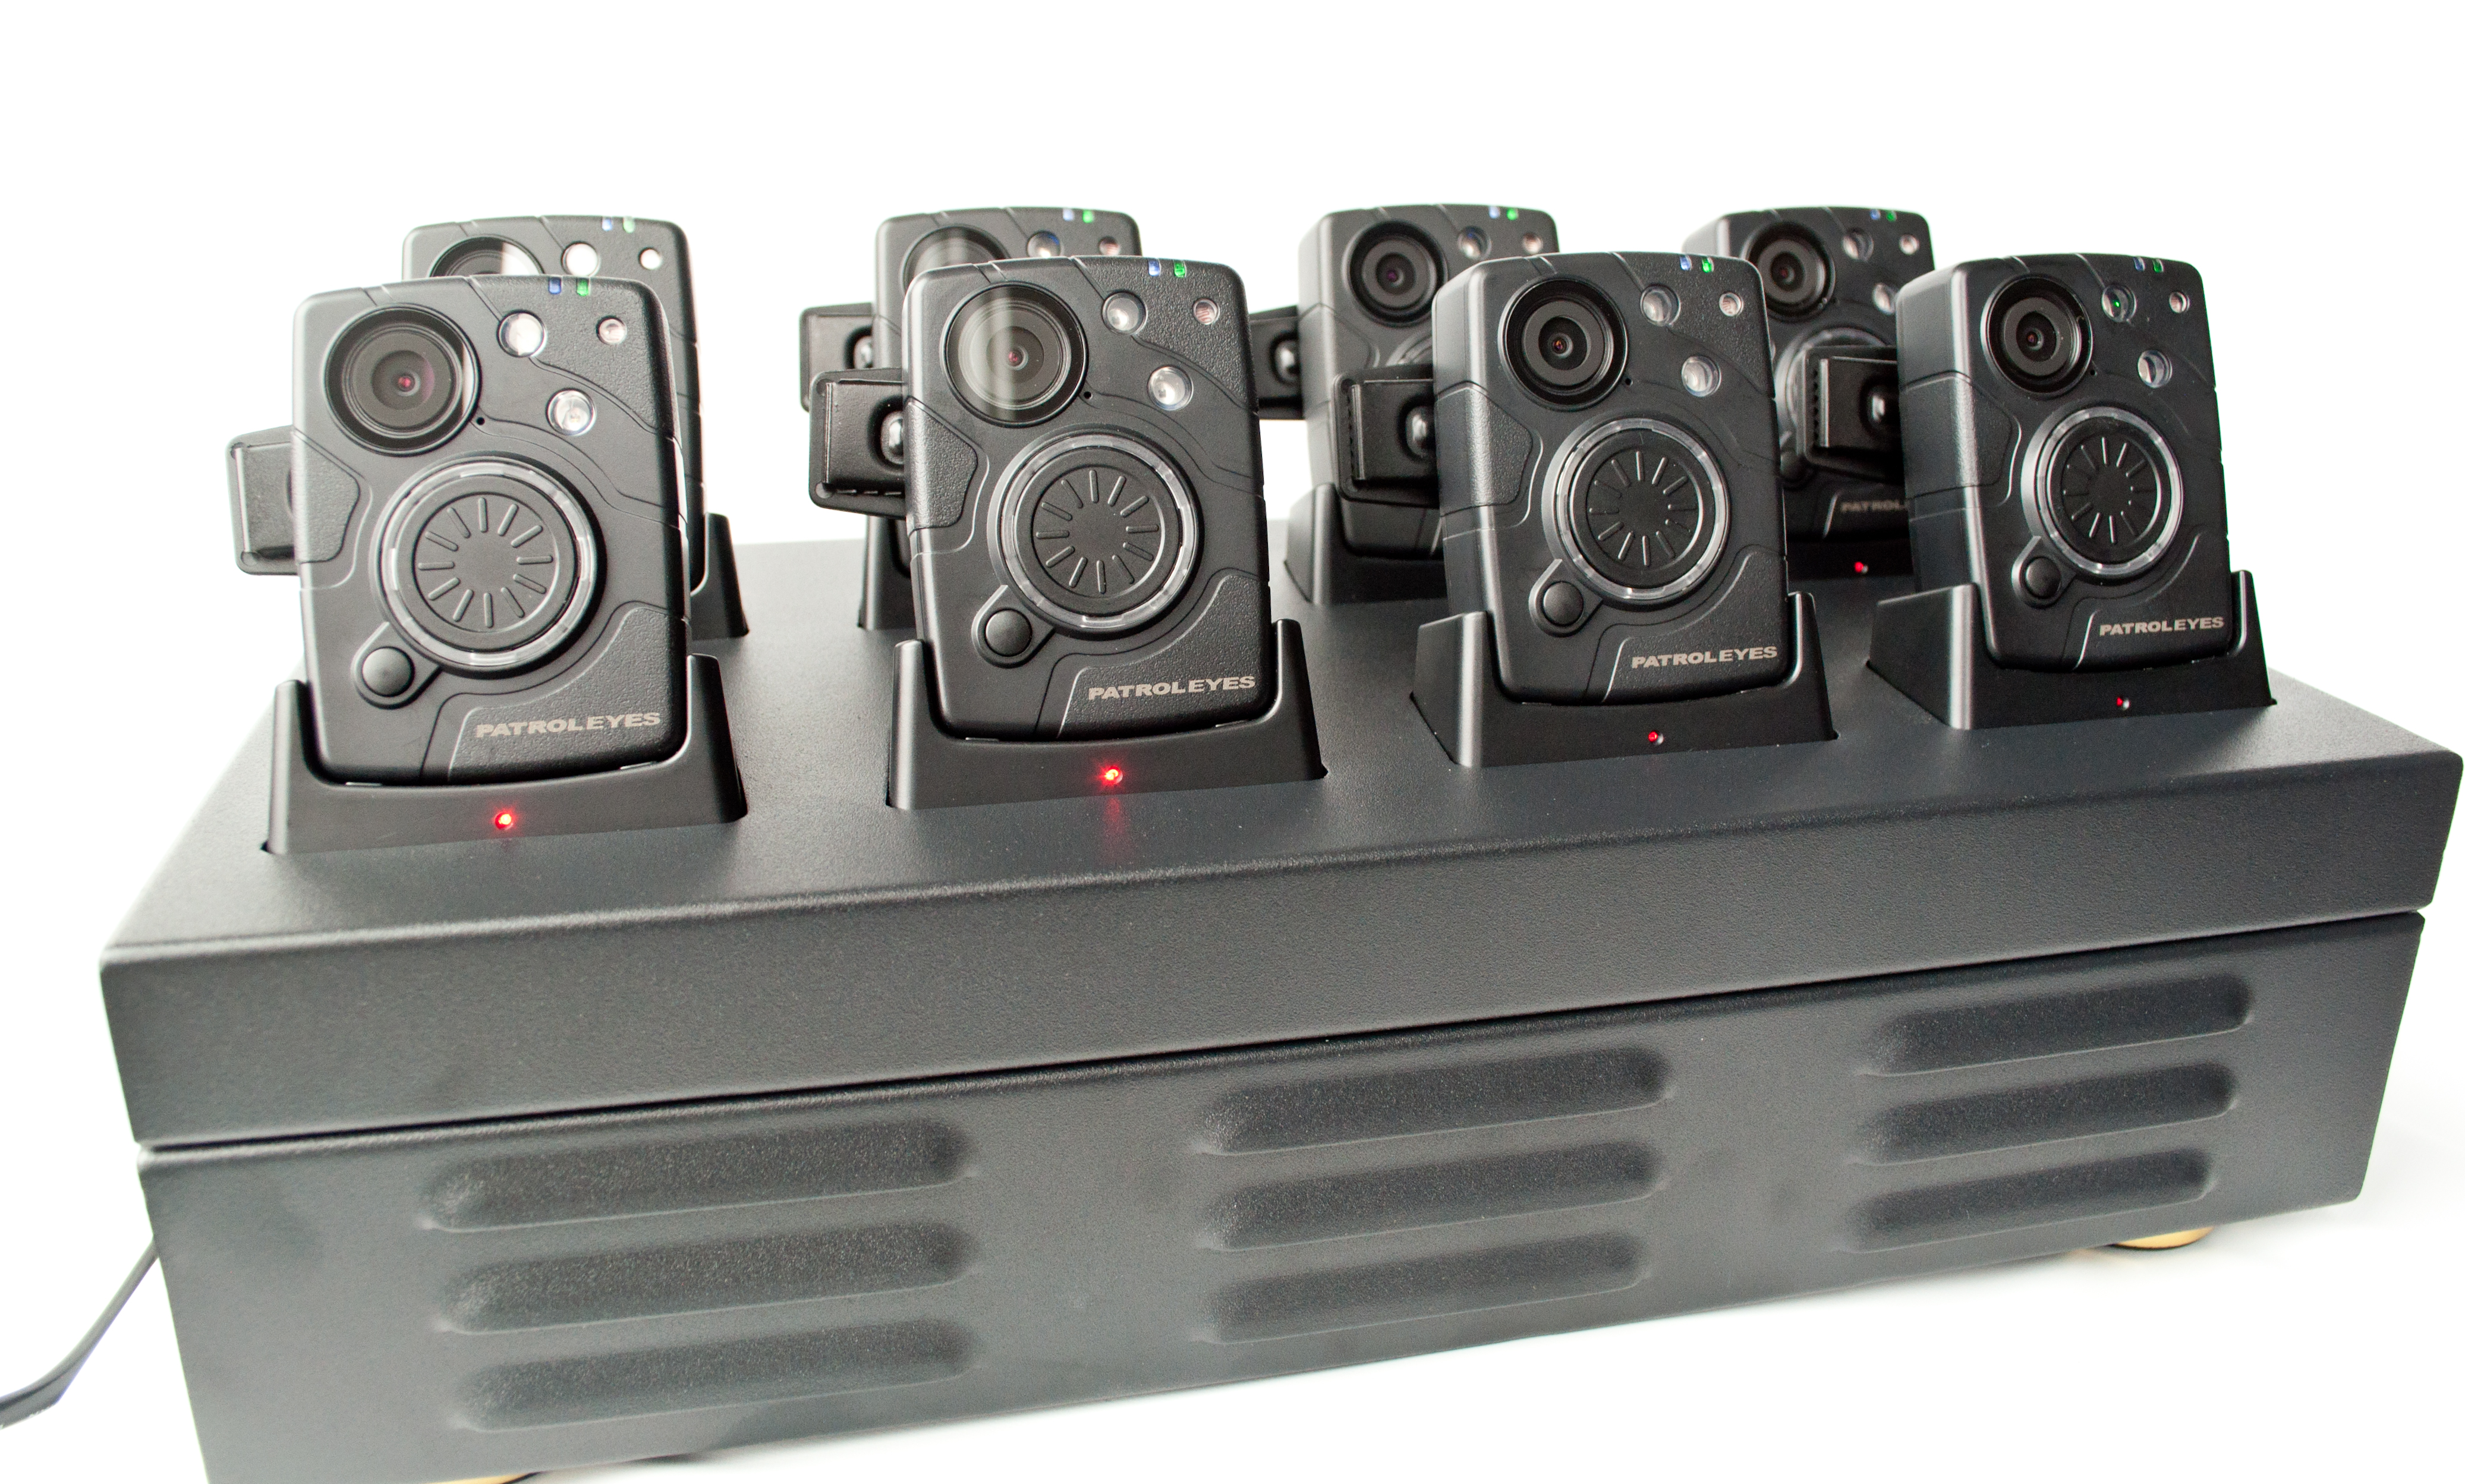 PatrolEyes SC-DV10 Police Data Transfer 8 Camera Docking Station